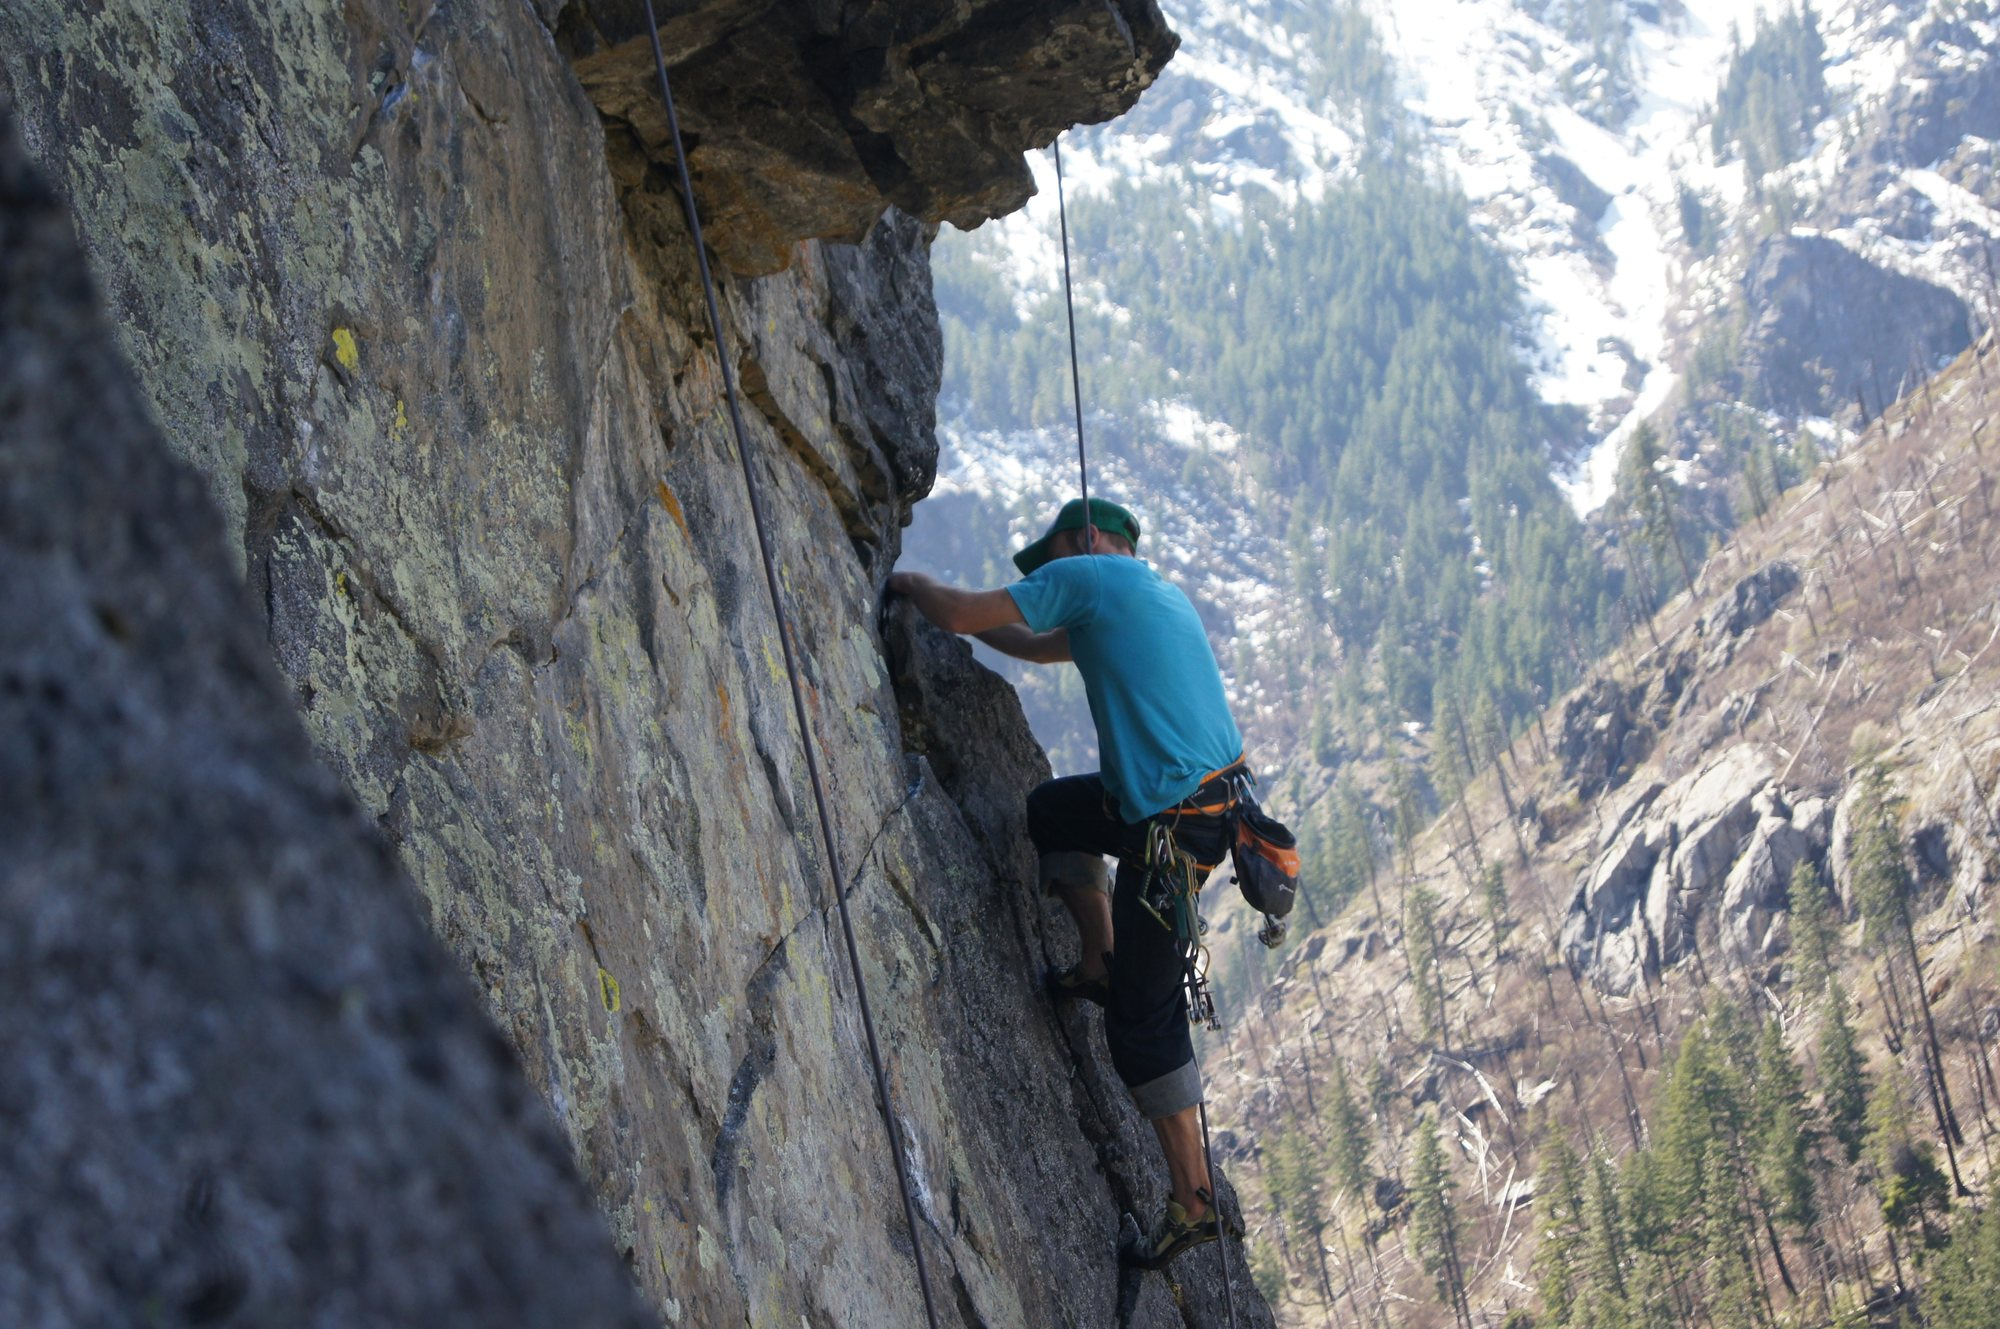 12 reasons you should never date a rock climber